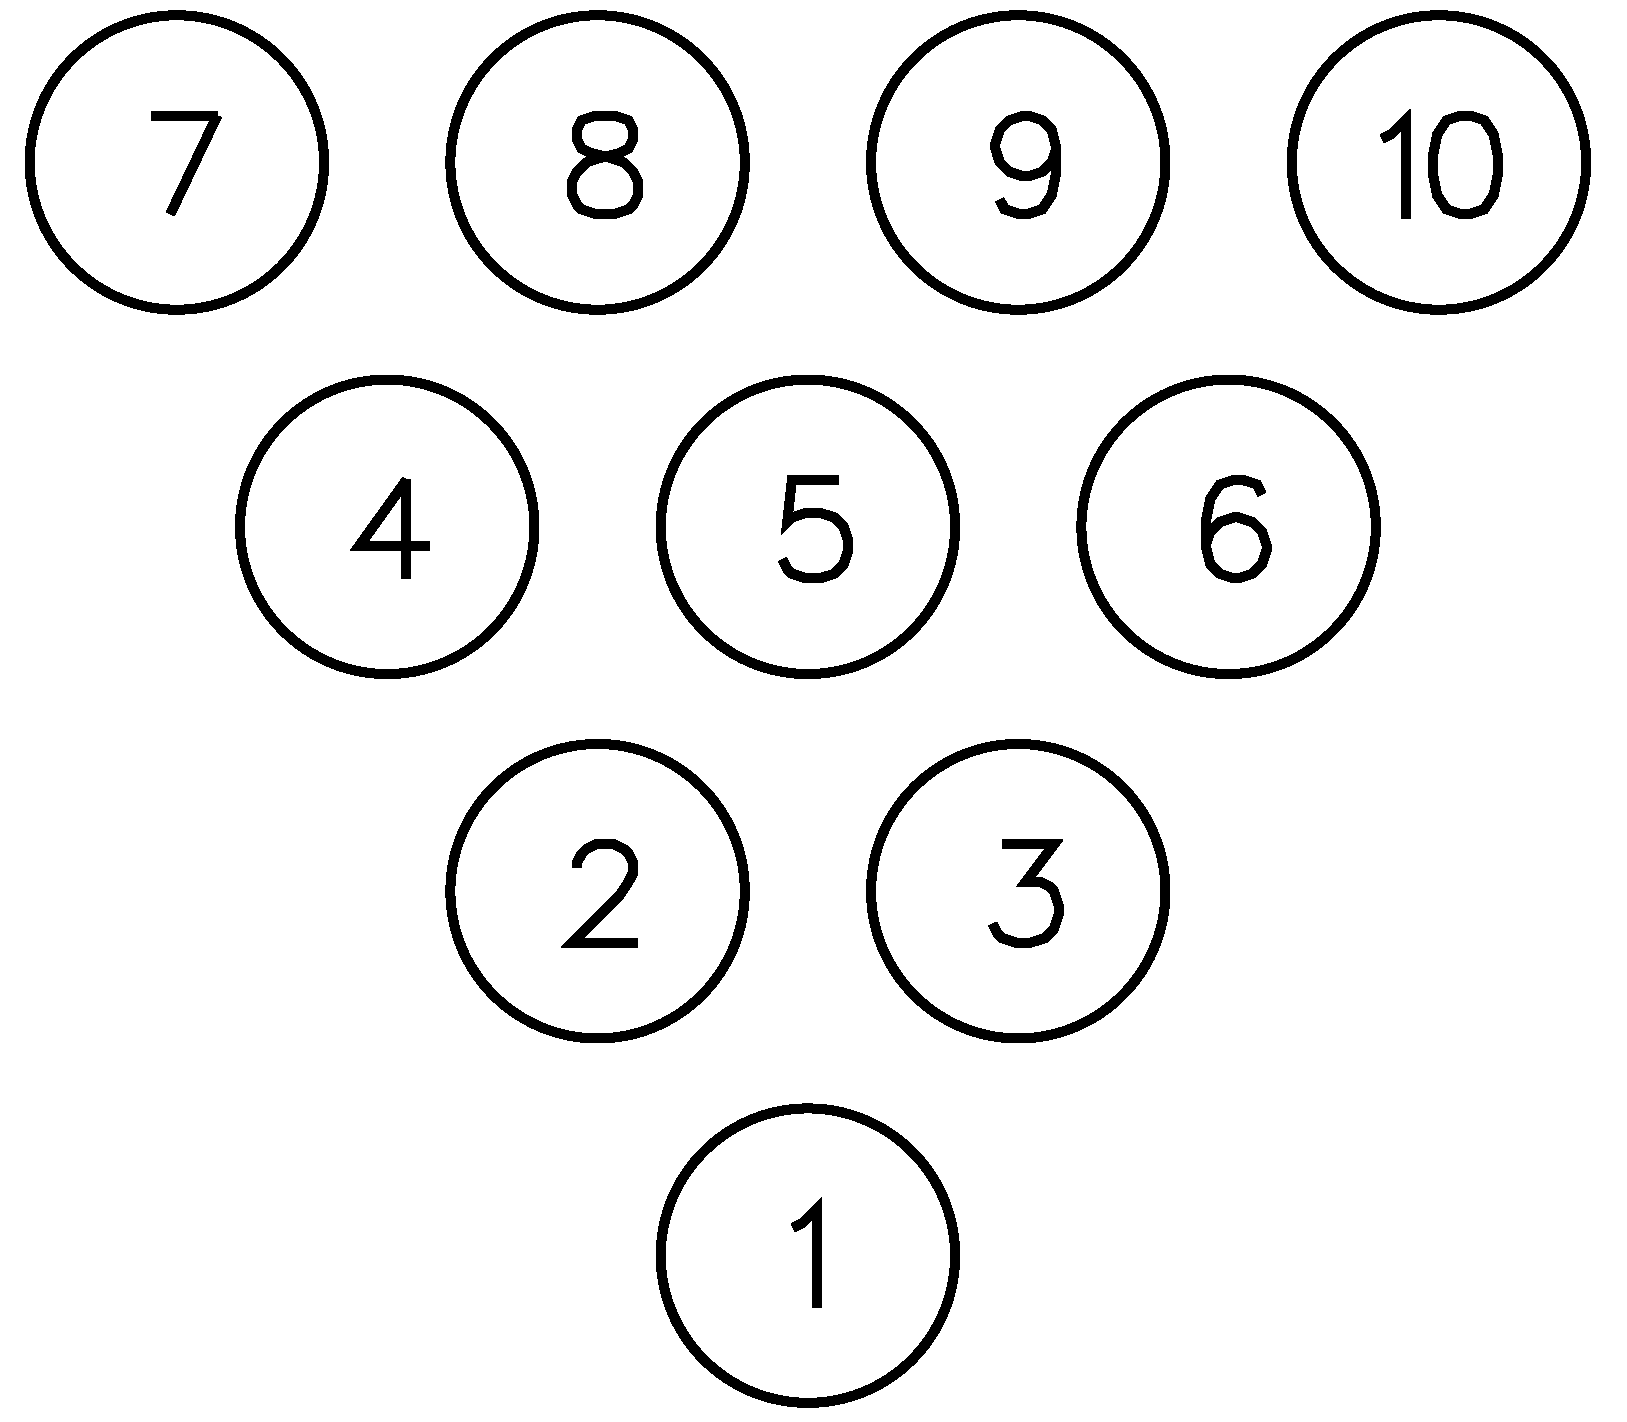 bowling pin number layout pictures to pin on pinterest